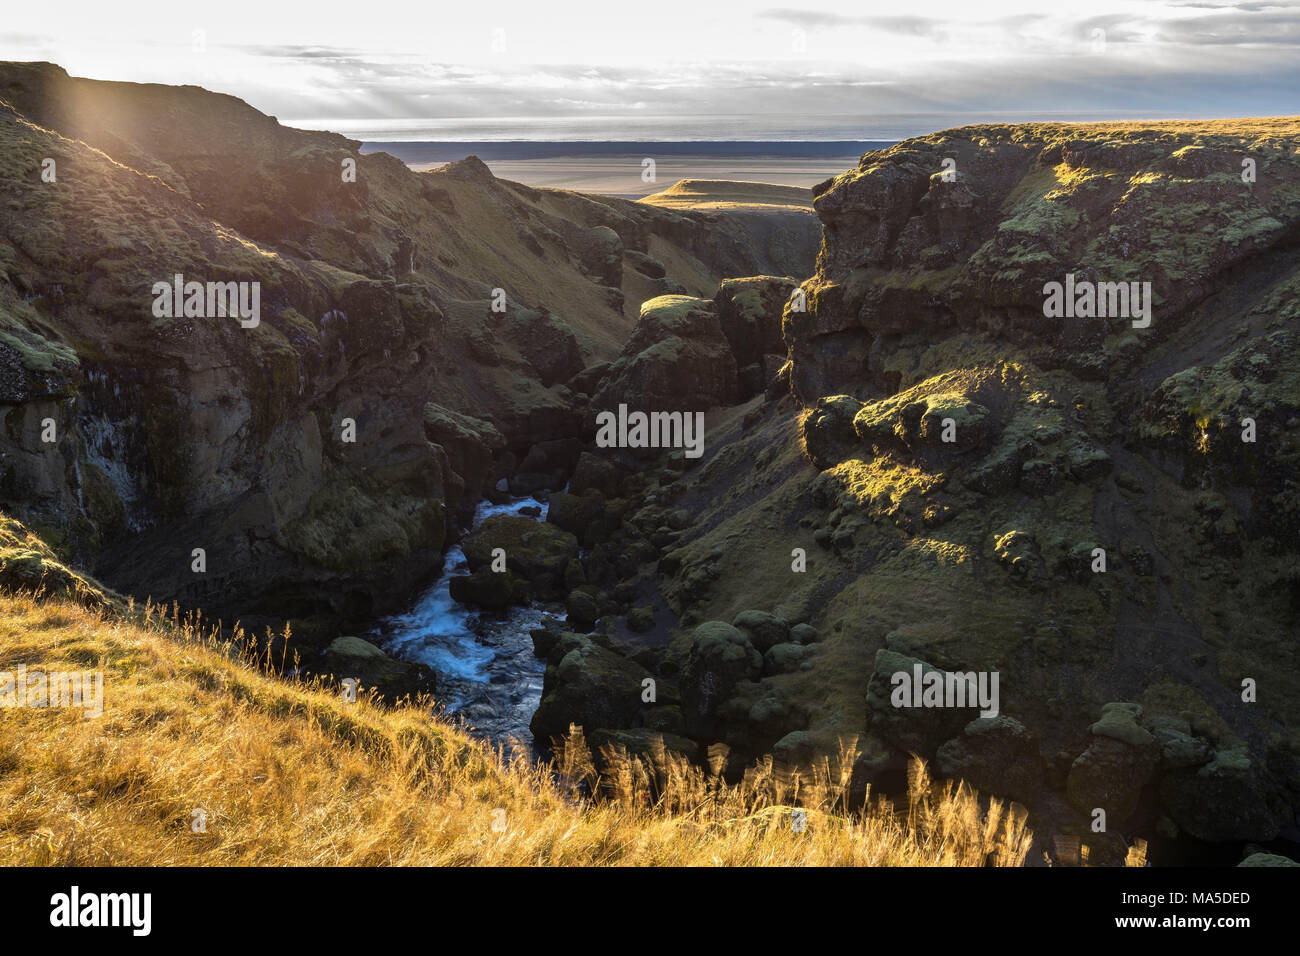 Europe, Northern Europe, Iceland, Skógar, Highlands, view from the Fimmvörduhals hiking trail to the south coast of Iceland - Stock Image